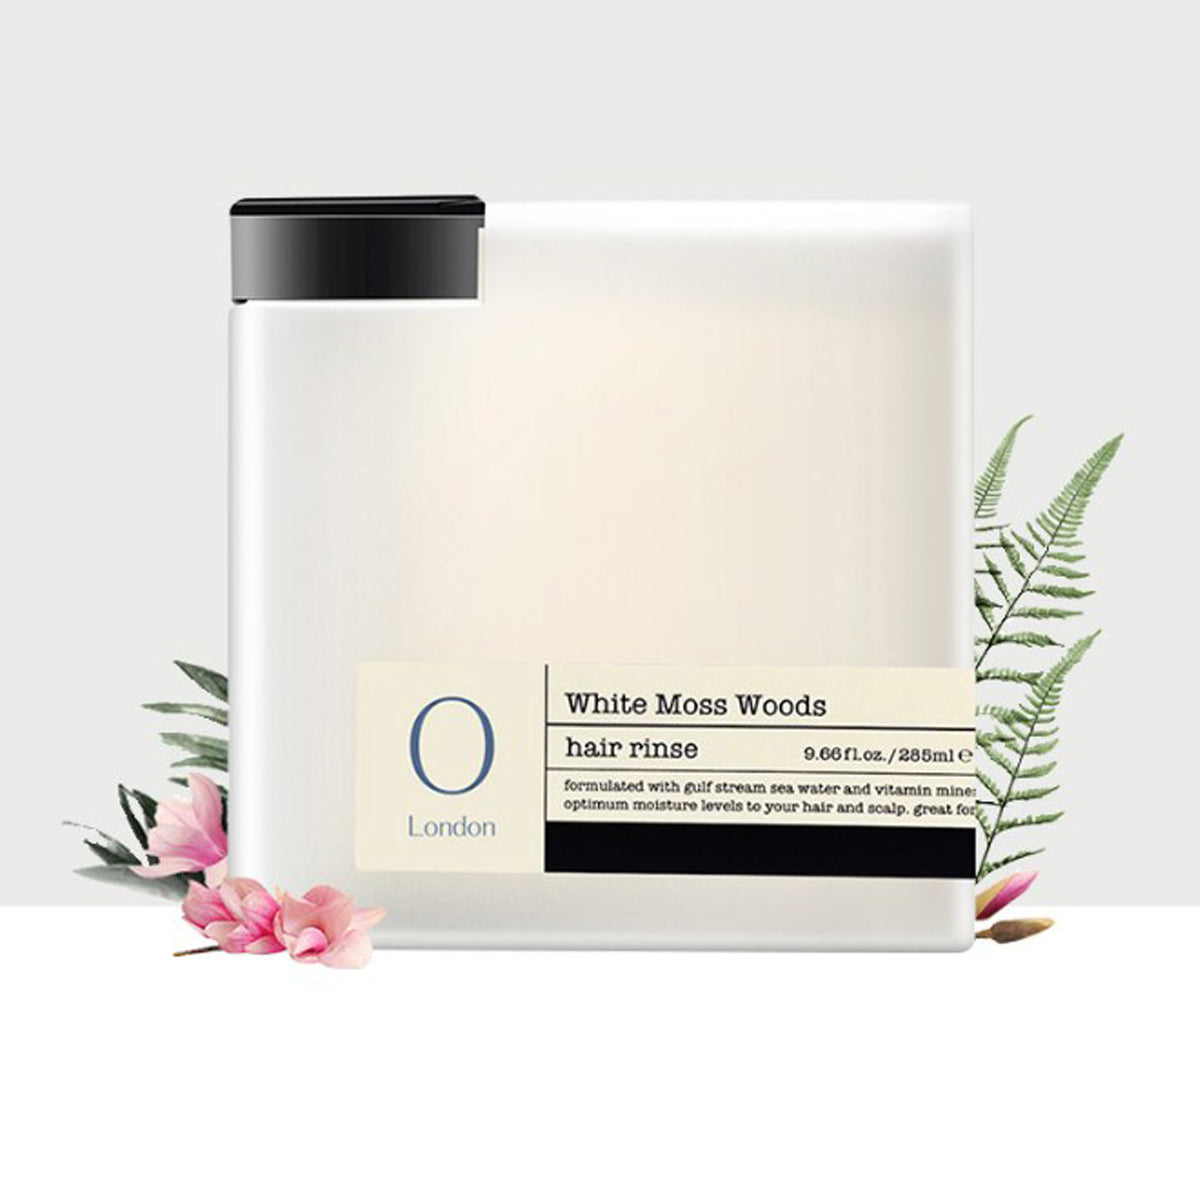 O LONDON WHITE MOSS WOODS_HAIR RINSE-JW010